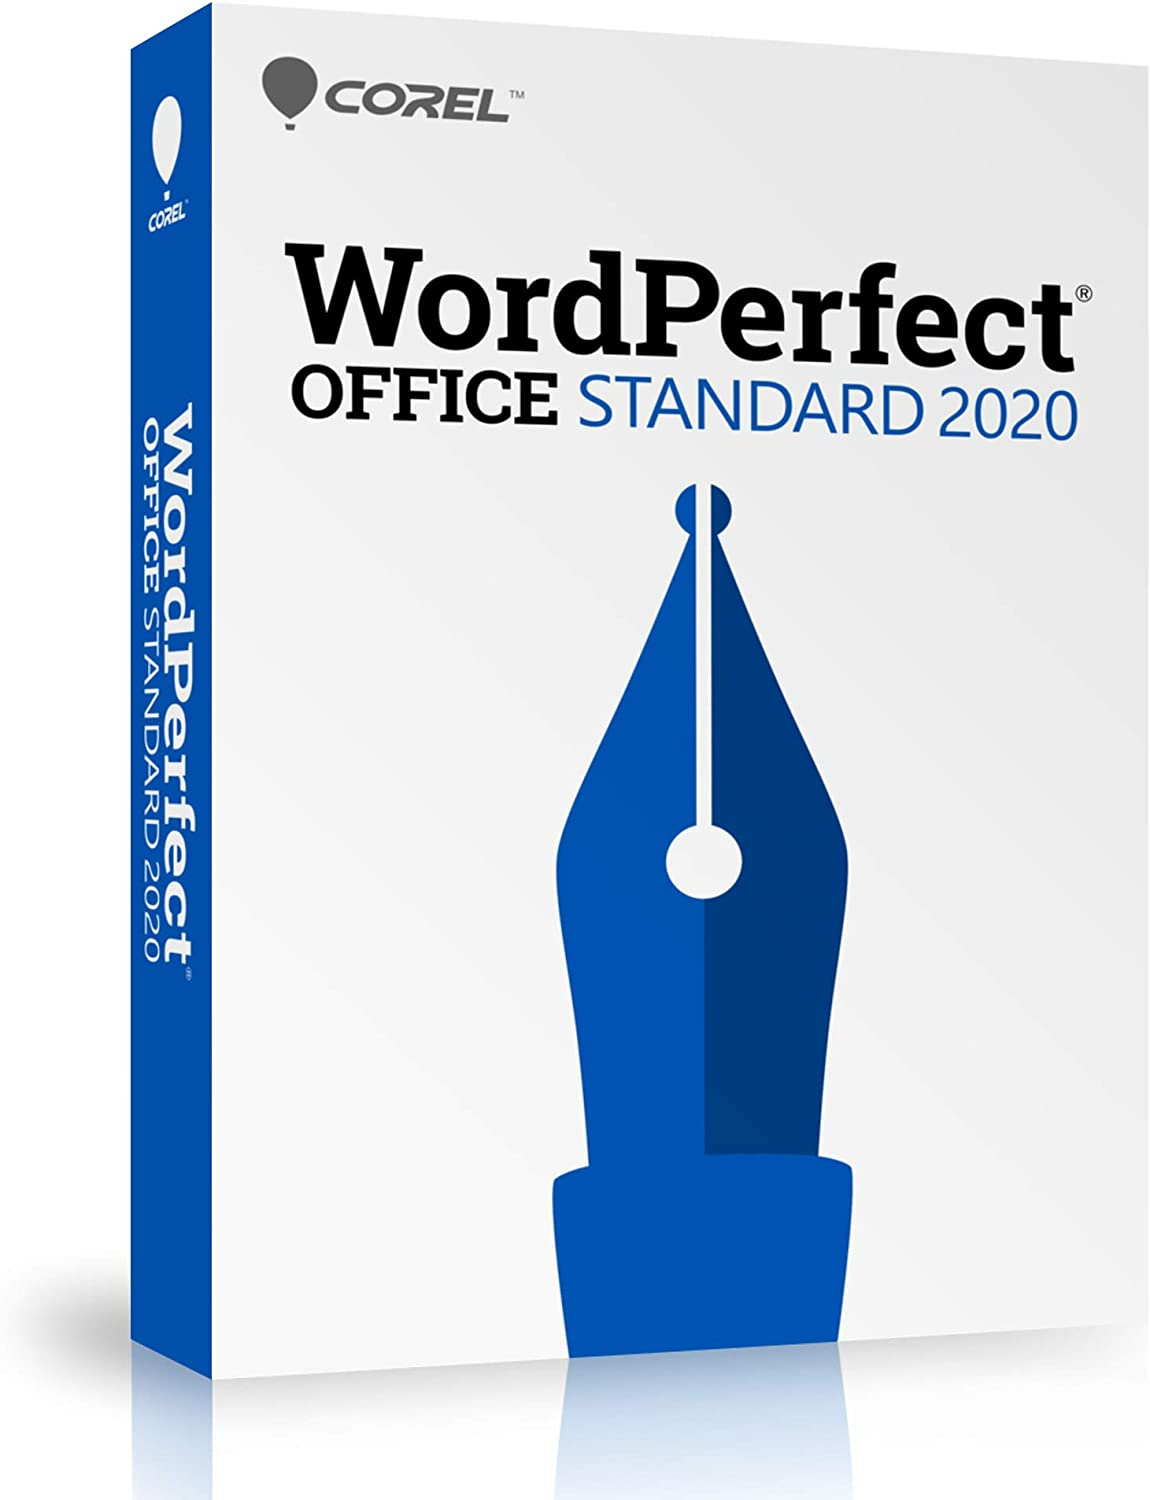 Corel WordPerfect Office 2020 Standard | Word Processor, Spreadsheets, Presentations | Newsletters, Labels, Envelopes, Reports, Fillable PDF Forms, eBooks [PC Disc]